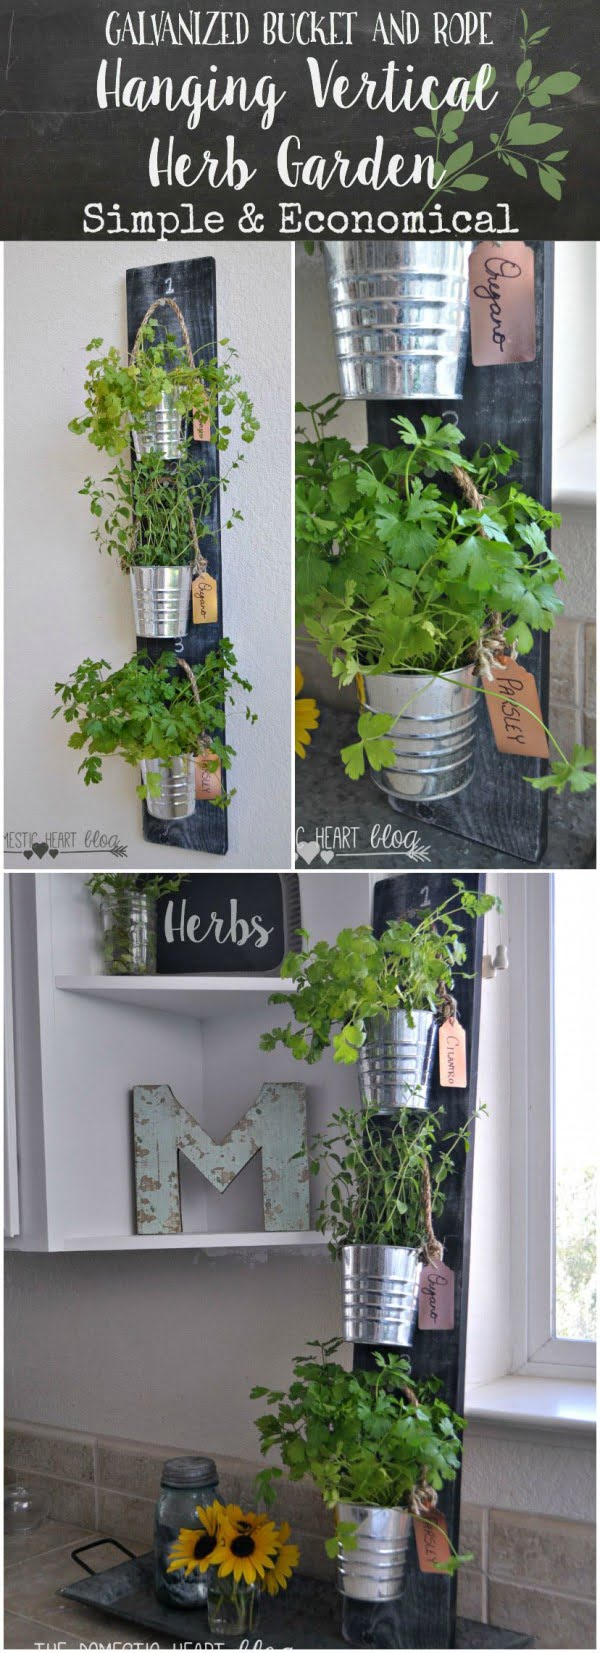 Check out how to build a DIY hanging vertical herb garden form galvanized buckets and rope